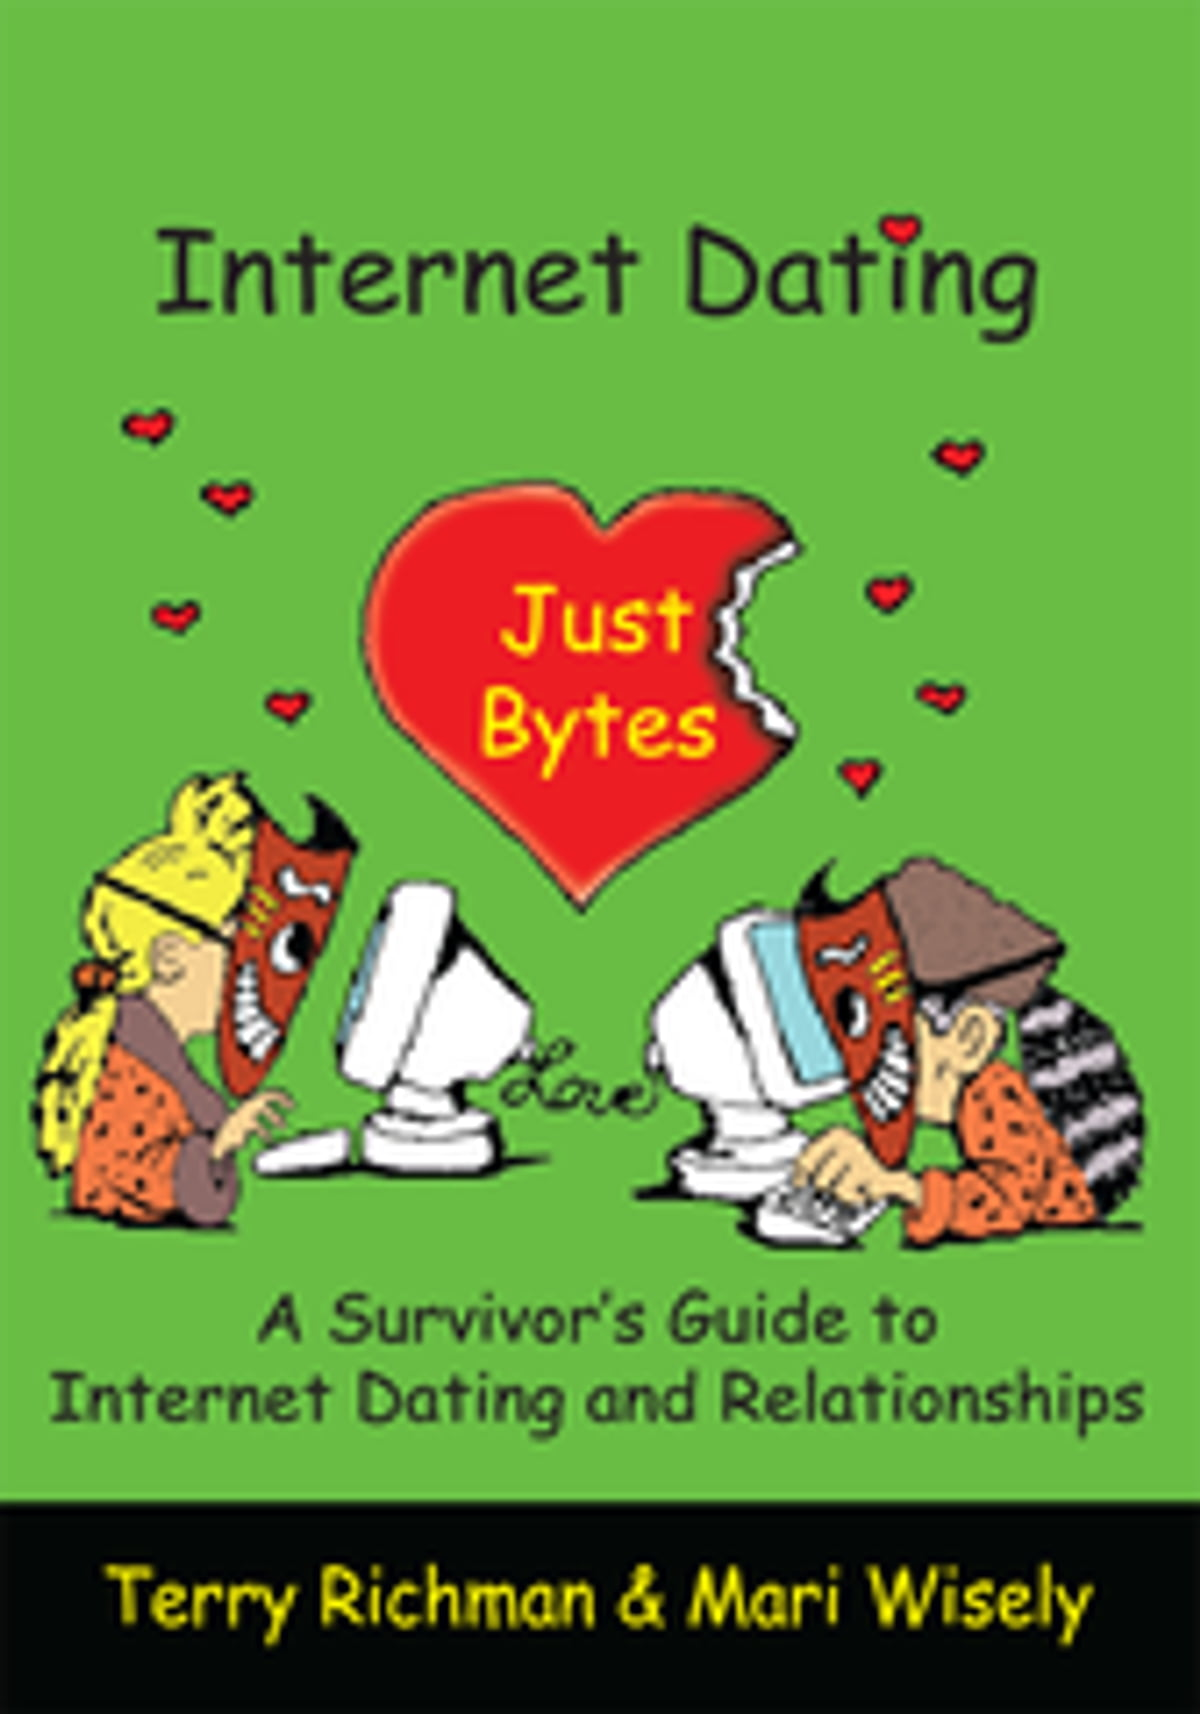 Article insider information about internet dating